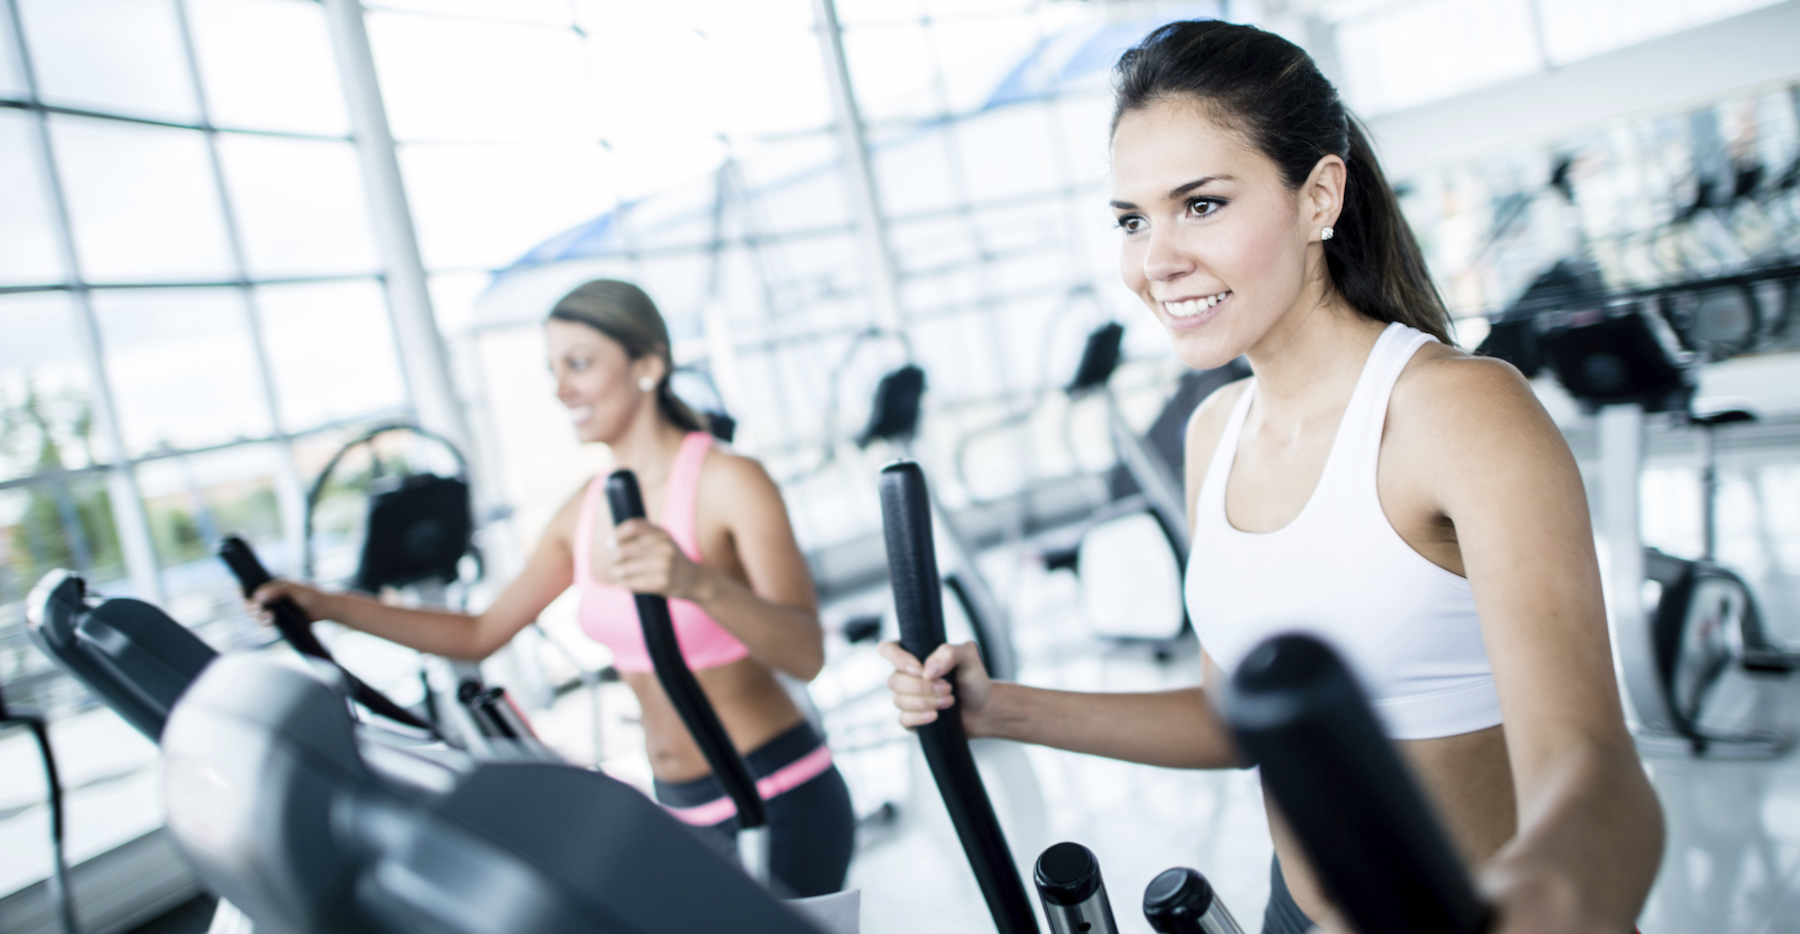 You Might Like 18 Legit Reasons The Elliptical Is Better Than A Treadmill Read